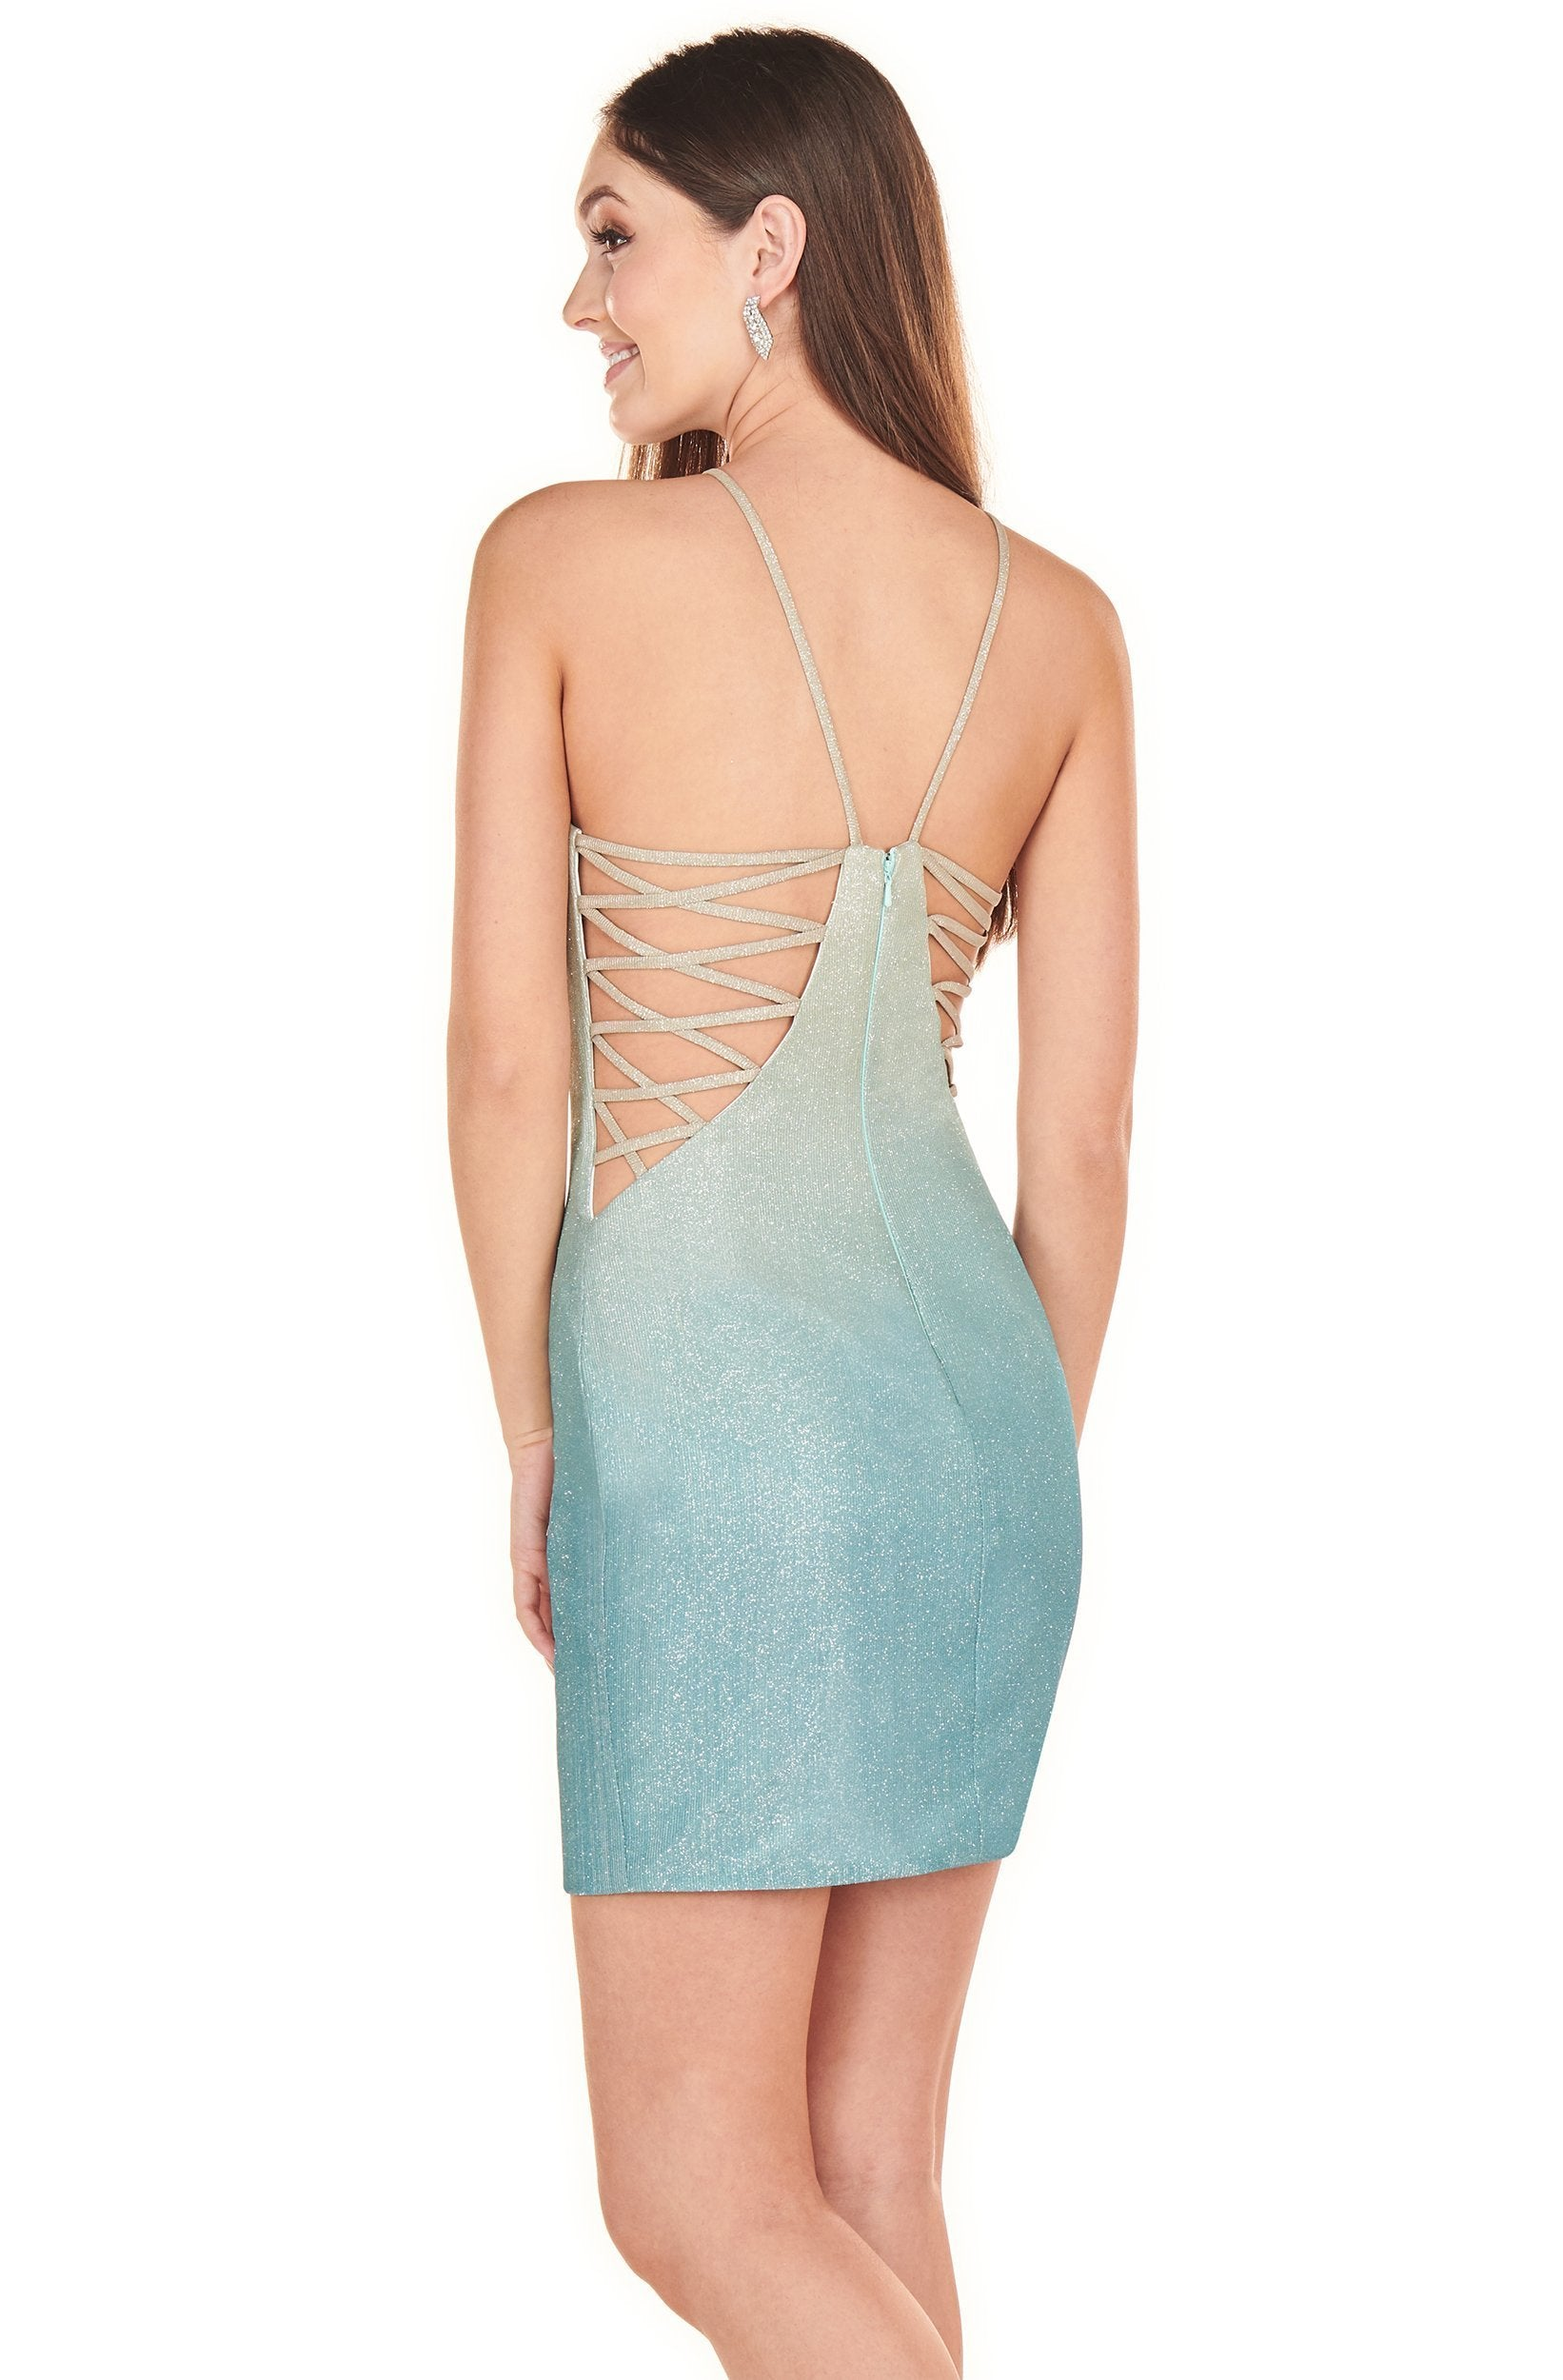 Rachel Allan Shorts - 4088 Halter Glitter Strappy Back Sheath Dress In Blue